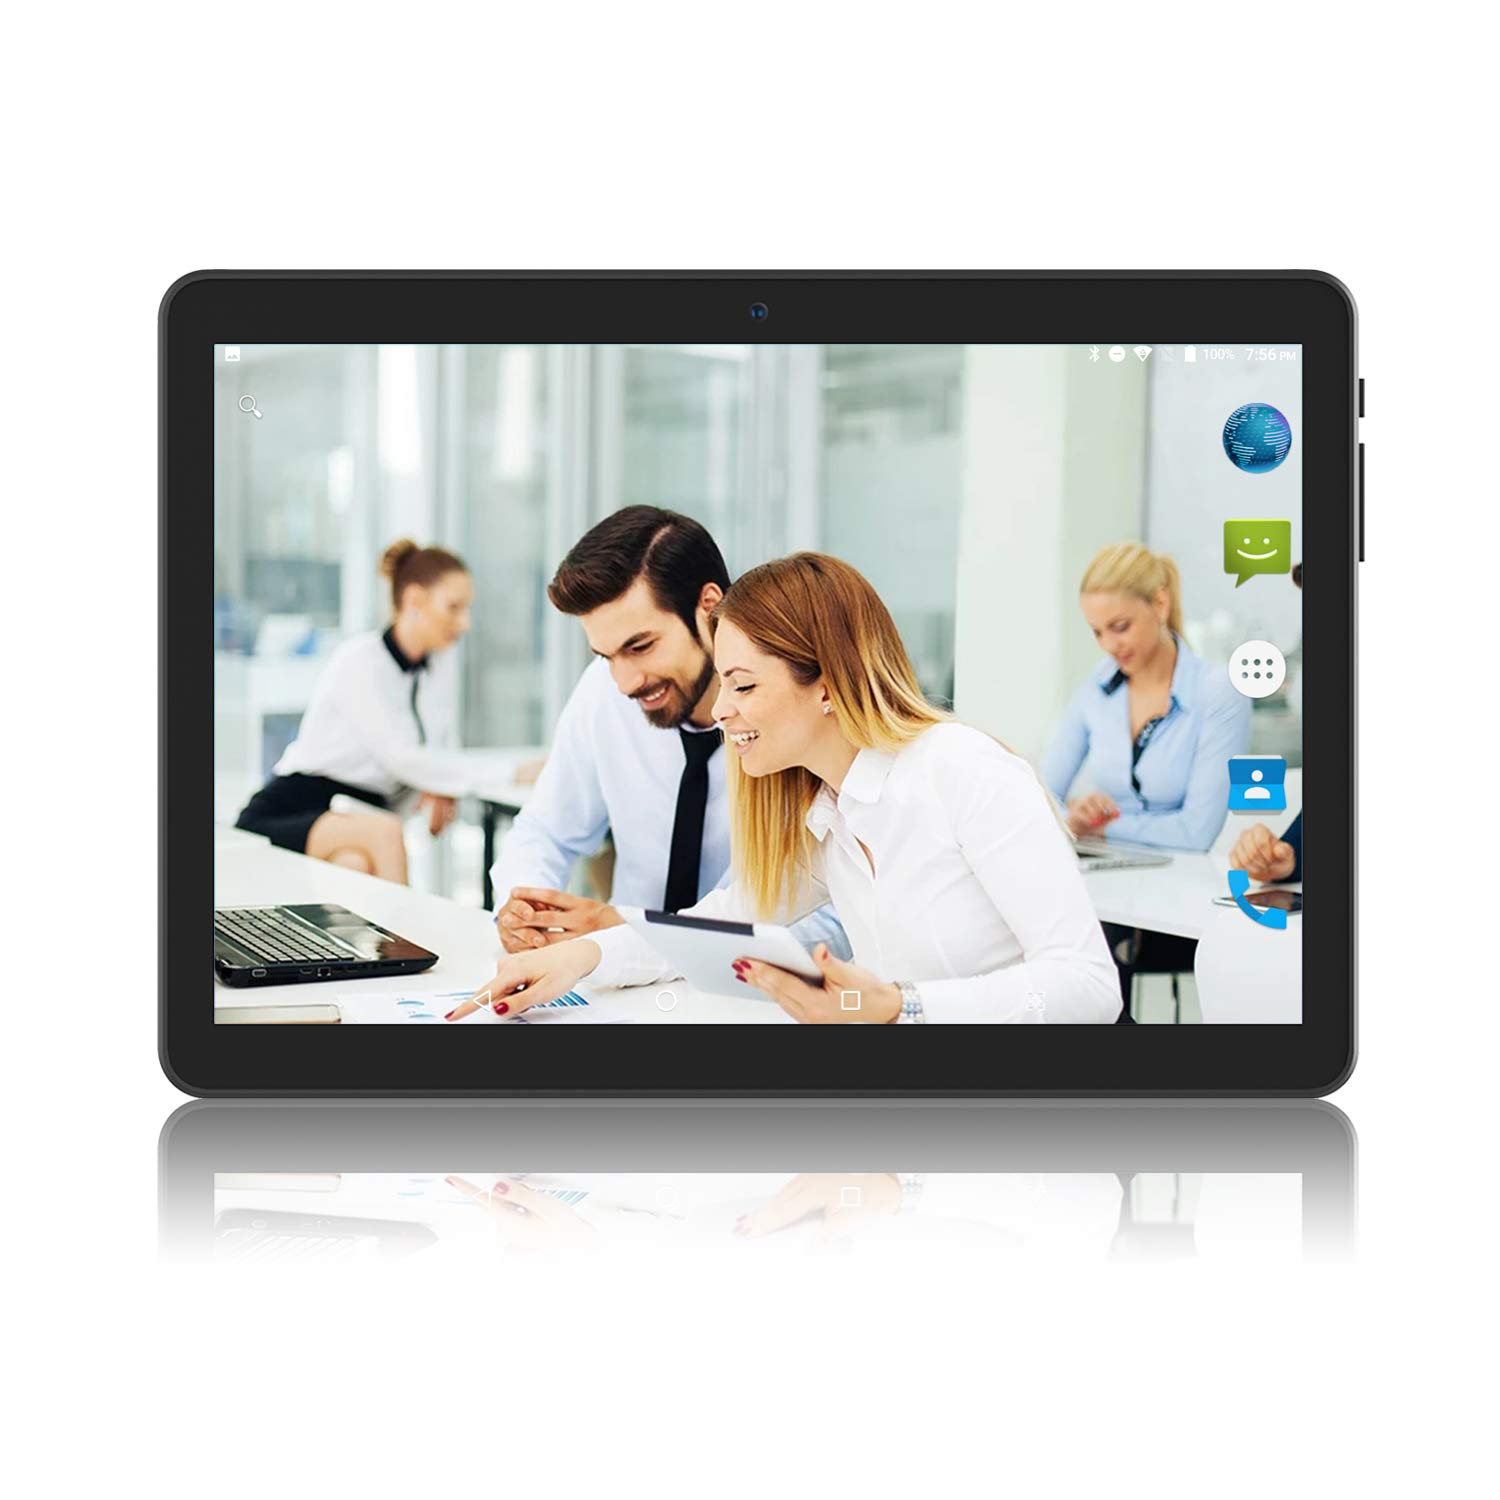 Victbing 10-inch Android 5G WiFi Tablet - Best Reviews Tablet